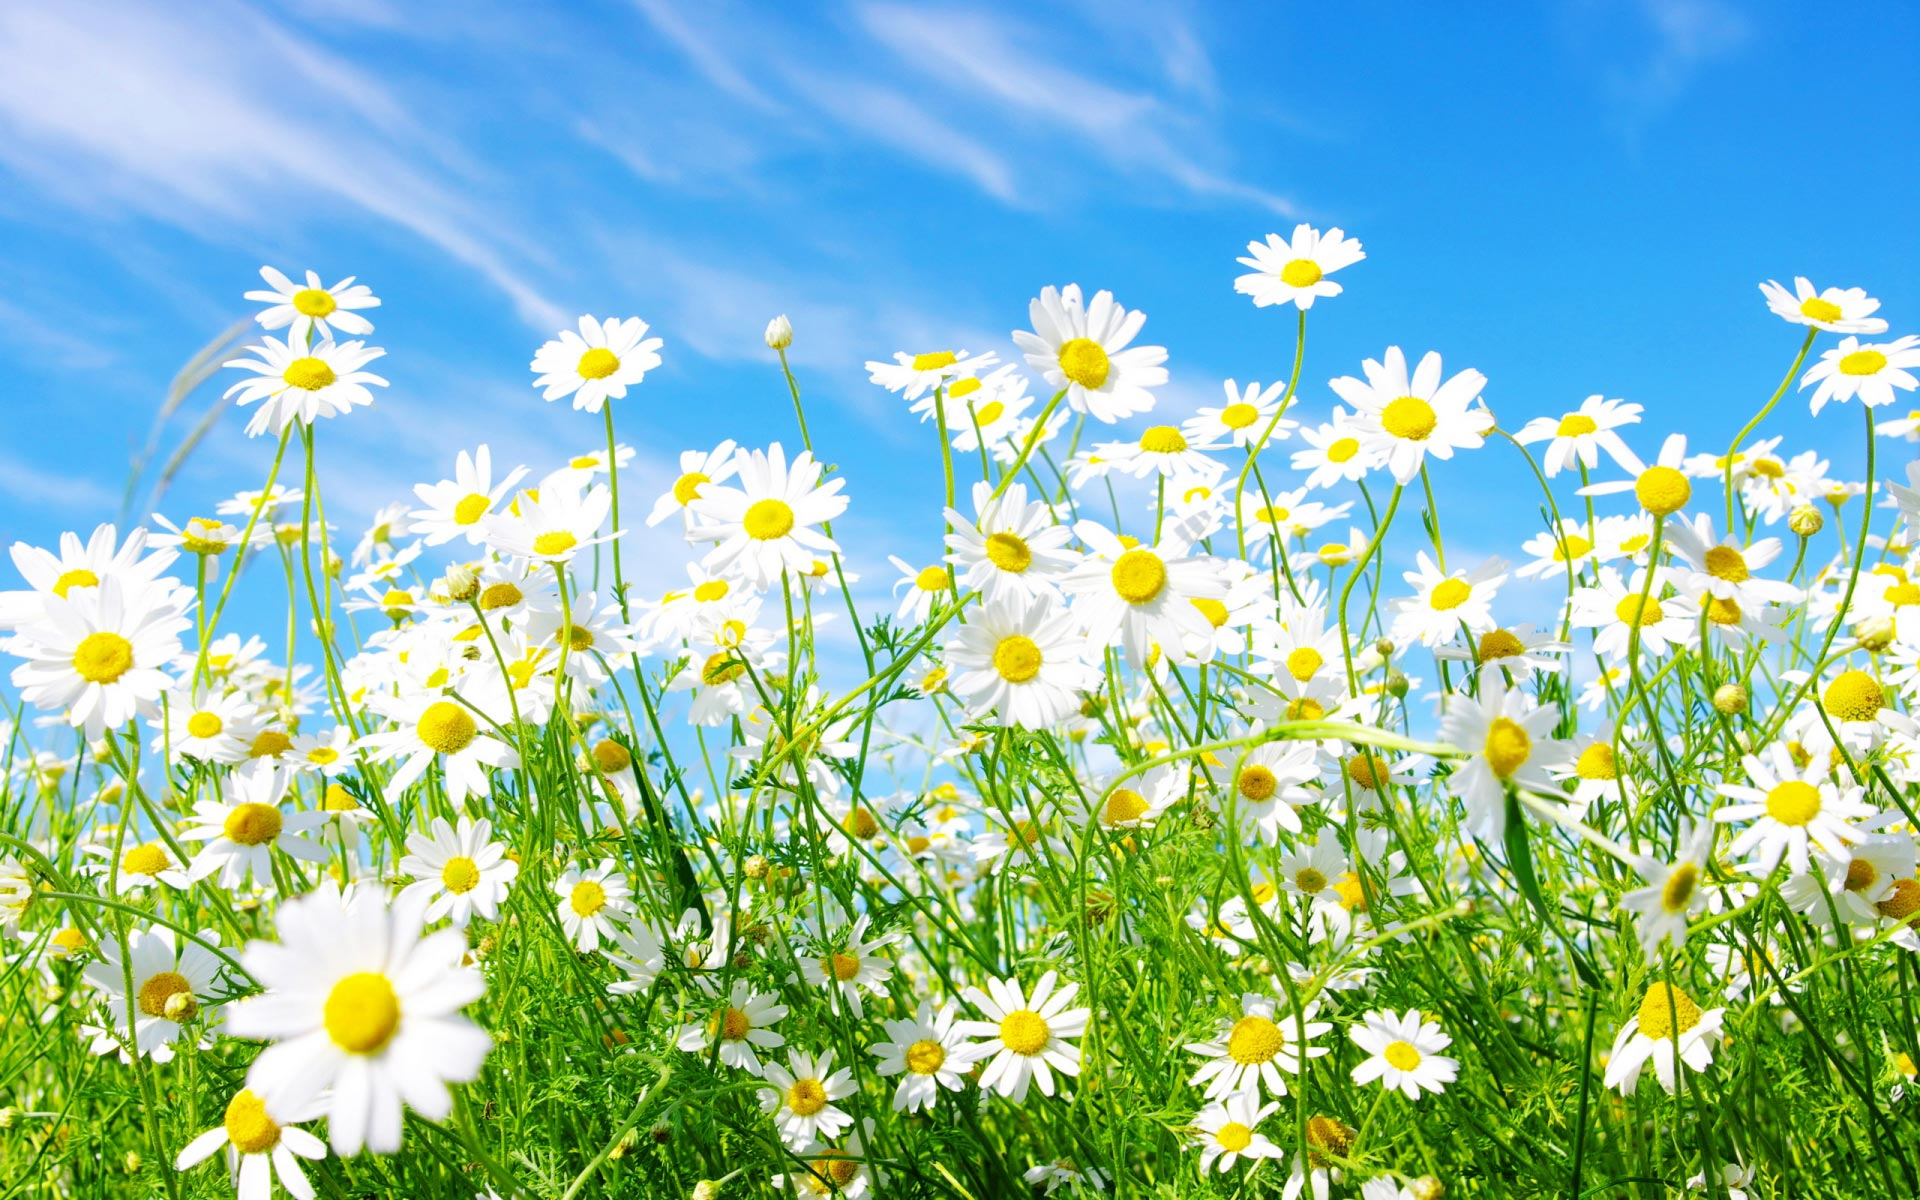 which is under the spring wallpapers category of hd wallpapers 1920x1200